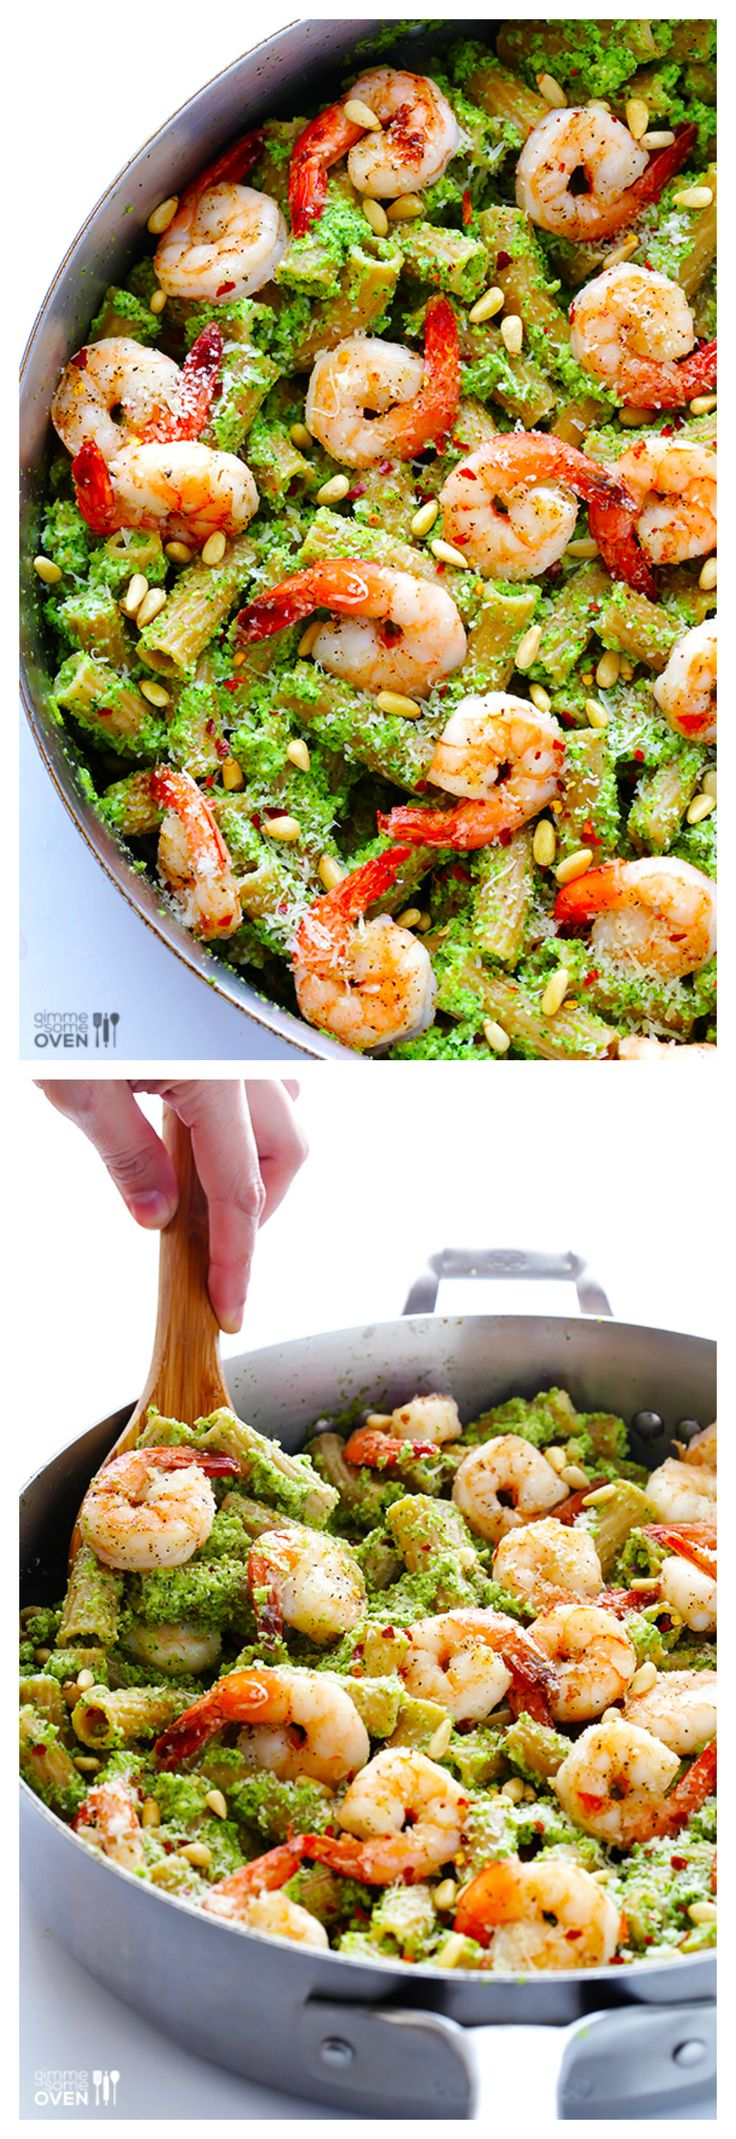 Shrimp Pasta with Broccoli Pesto ~ who knew that broccoli tasted so good in a pesto?! | gimmesomeoven.com